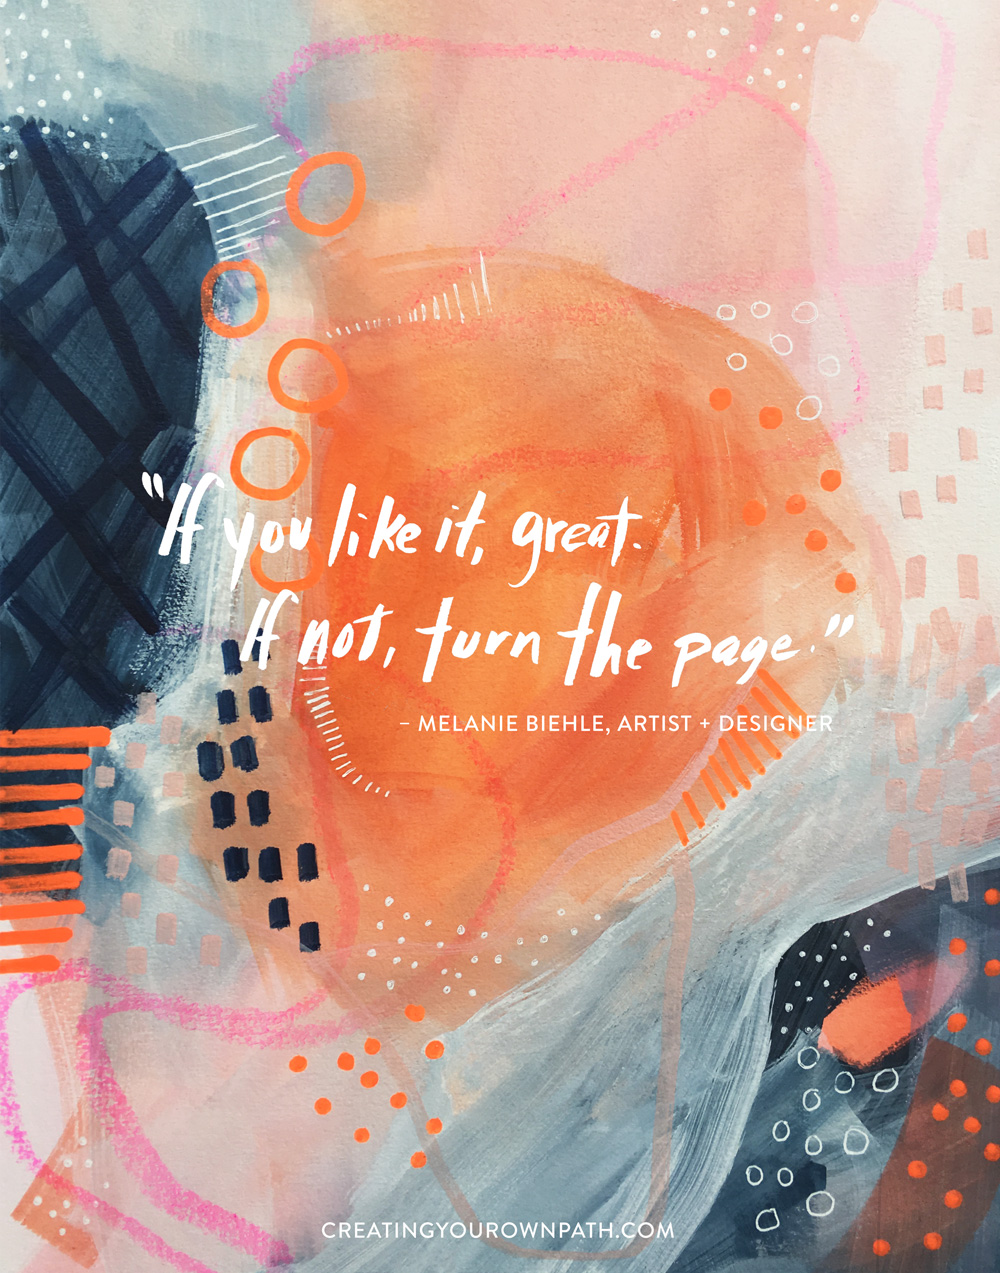 If you like it, great. If not, turn the page. Melanie Biehle Artist and Designer on the Creating Your Own Path podcast, April 13, 2017